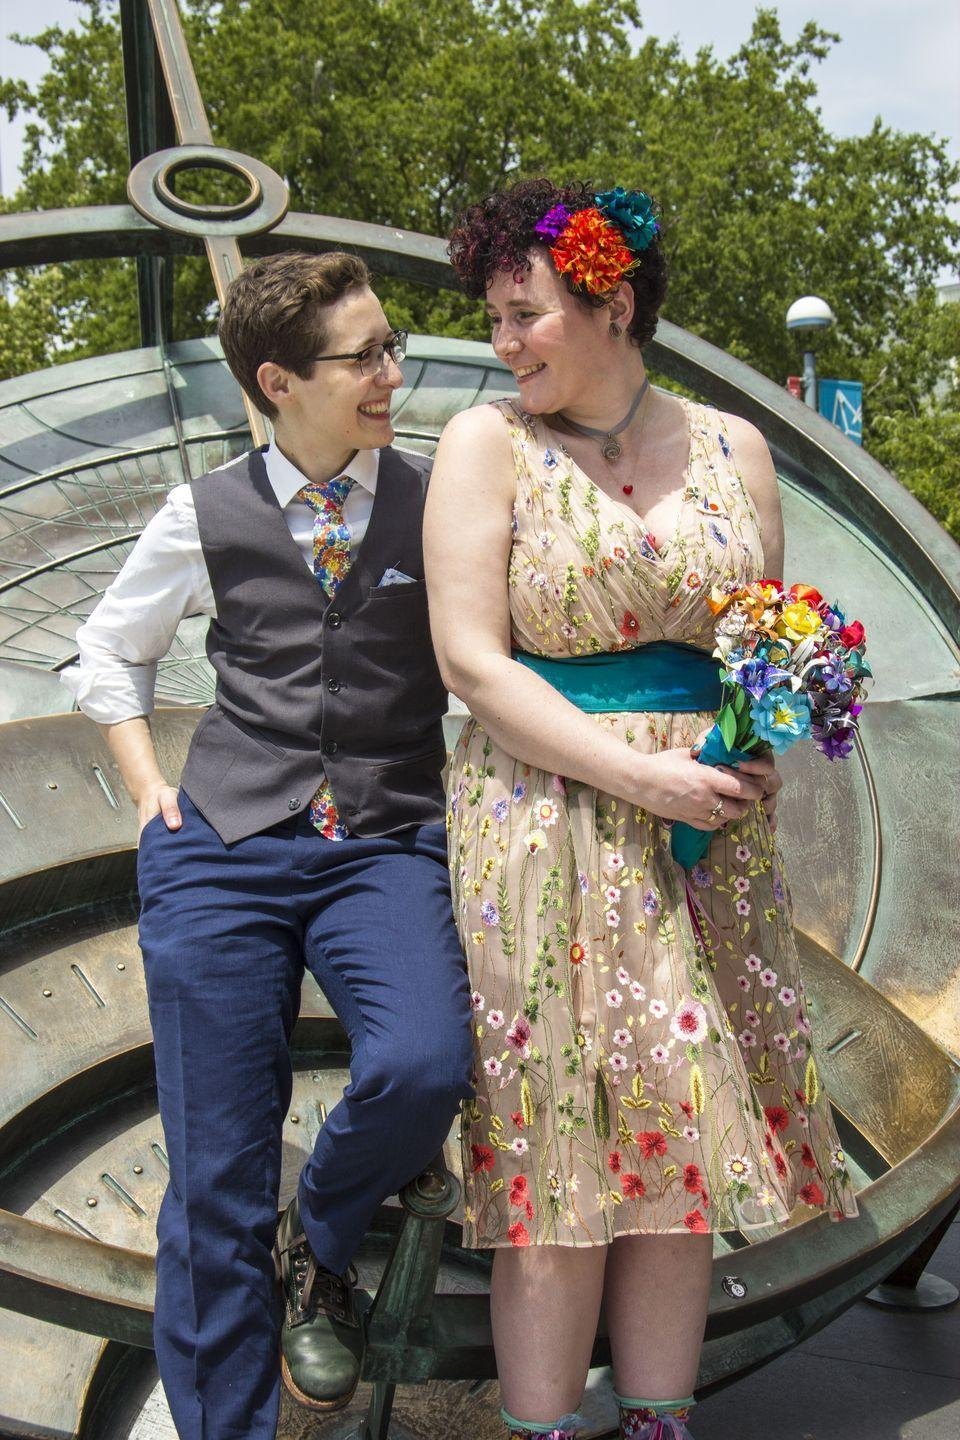 """<p>In June 2017, Jay and Tea invited their families to join them at the Hall of Science in Flushing, Queens where they exchanged vows under the Titan II. The flowers in Tea's hair were made out of the letters they wrote each other during their <a href=""""https://www.oprahdaily.com/life/relationships-love/a27628635/long-distance-relationship-tips/"""" rel=""""nofollow noopener"""" target=""""_blank"""" data-ylk=""""slk:long-distance relationship"""" class=""""link rapid-noclick-resp"""">long-distance relationship</a>.</p>"""